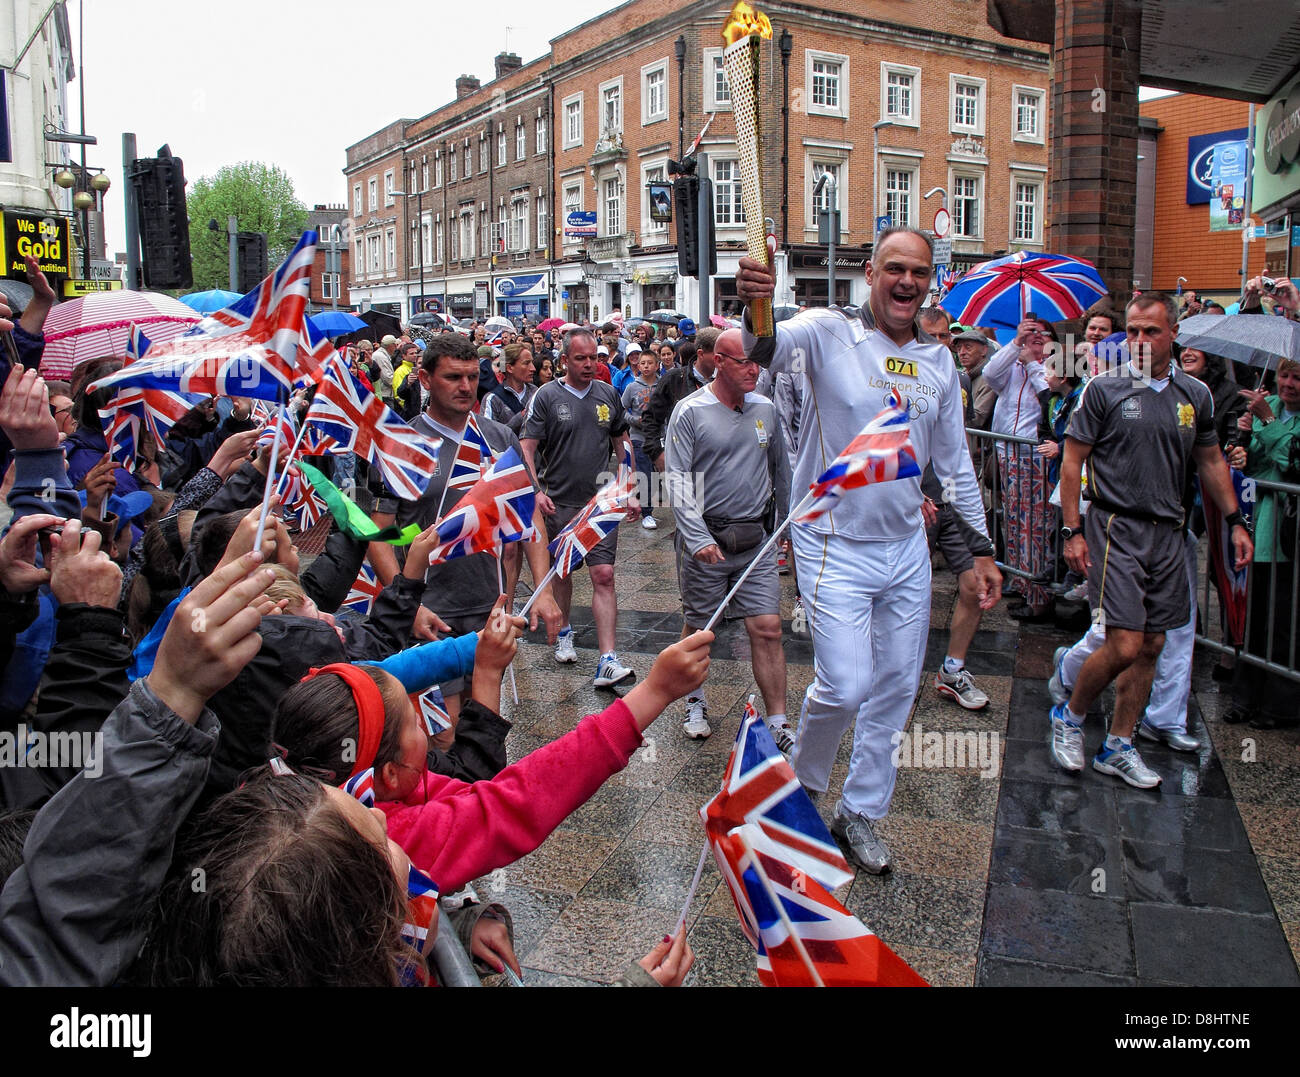 Runner 071 Brings the olympic flame into Warrington up Sankey St, near Golden Square shopping area Stock Photo